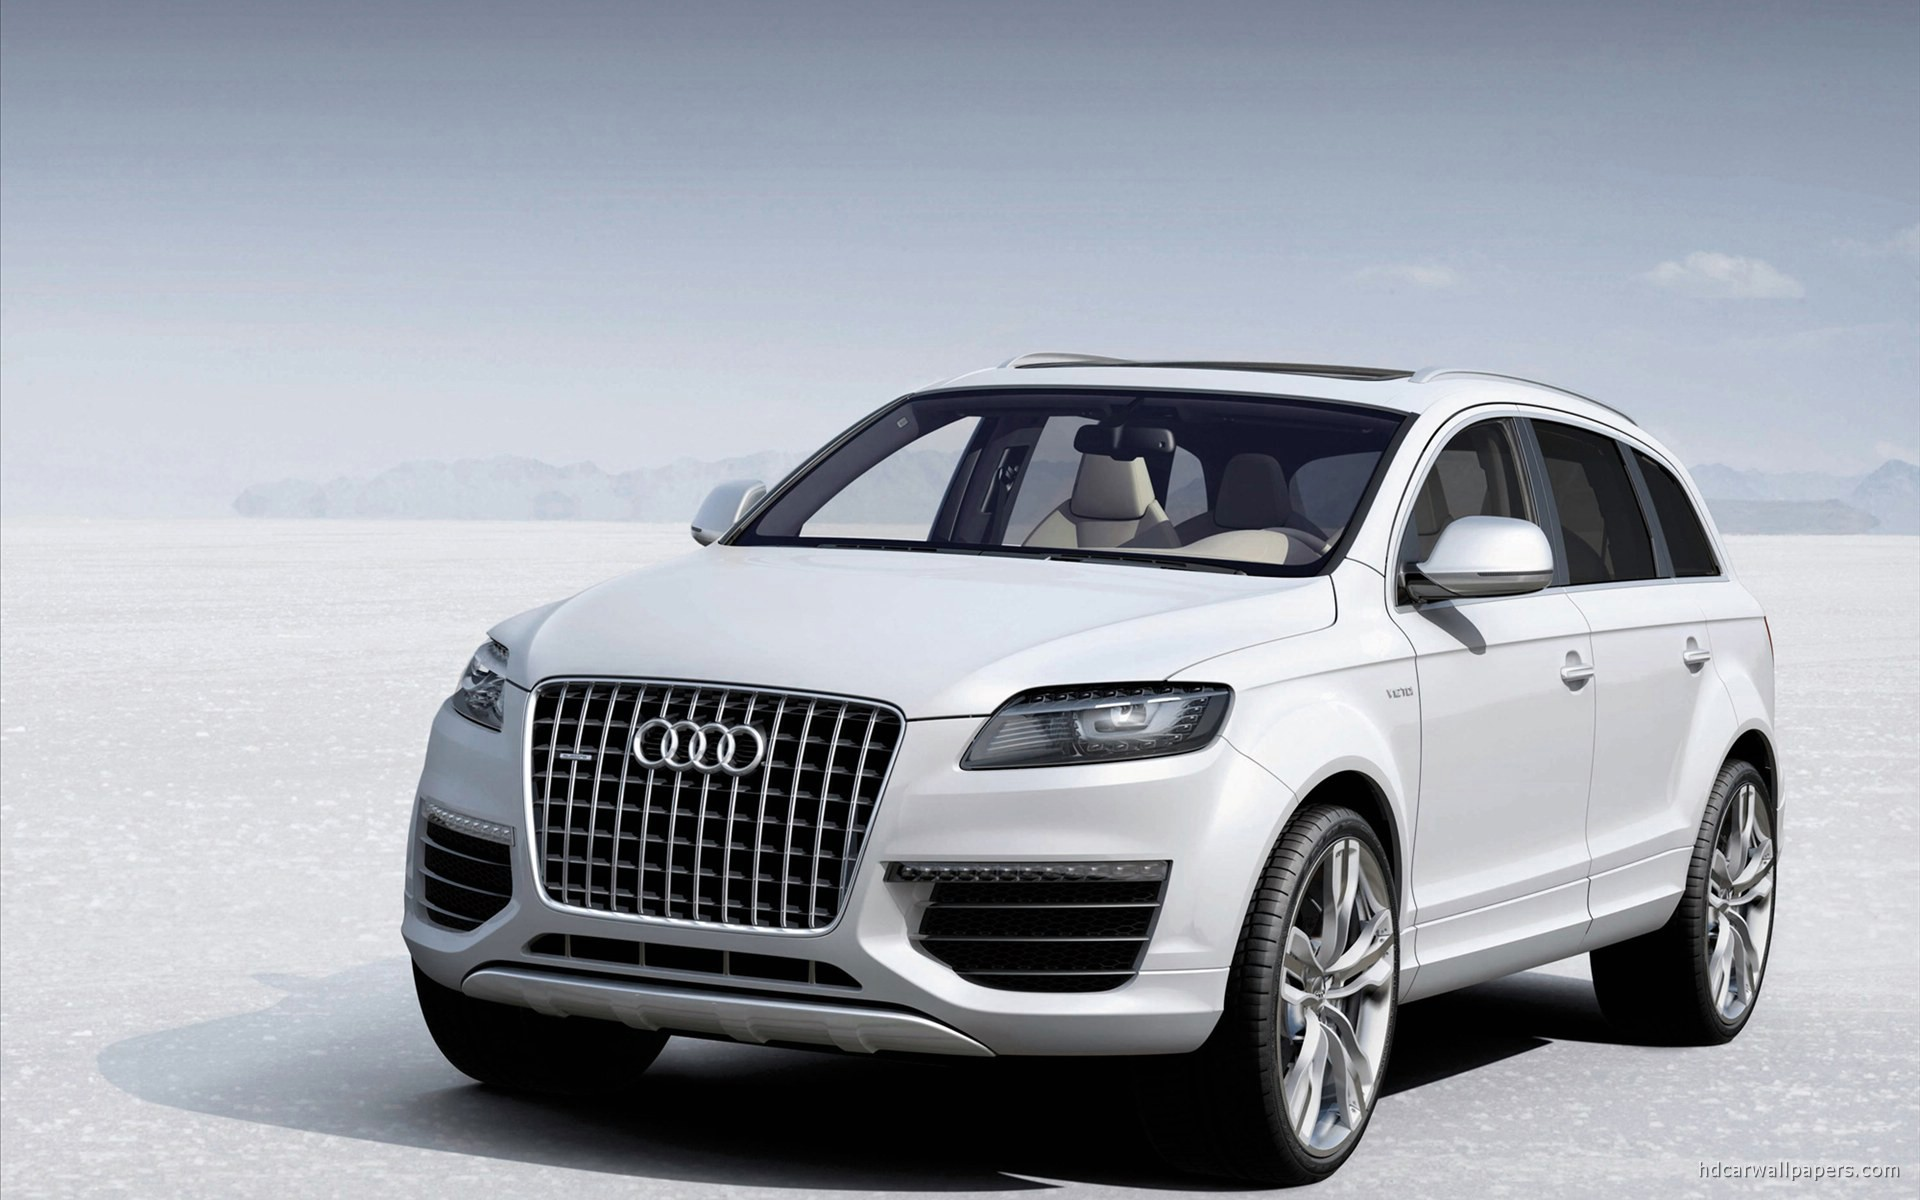 2012 Audi Q7 V12 Wallpaper Hd Car Wallpapers Id 1798